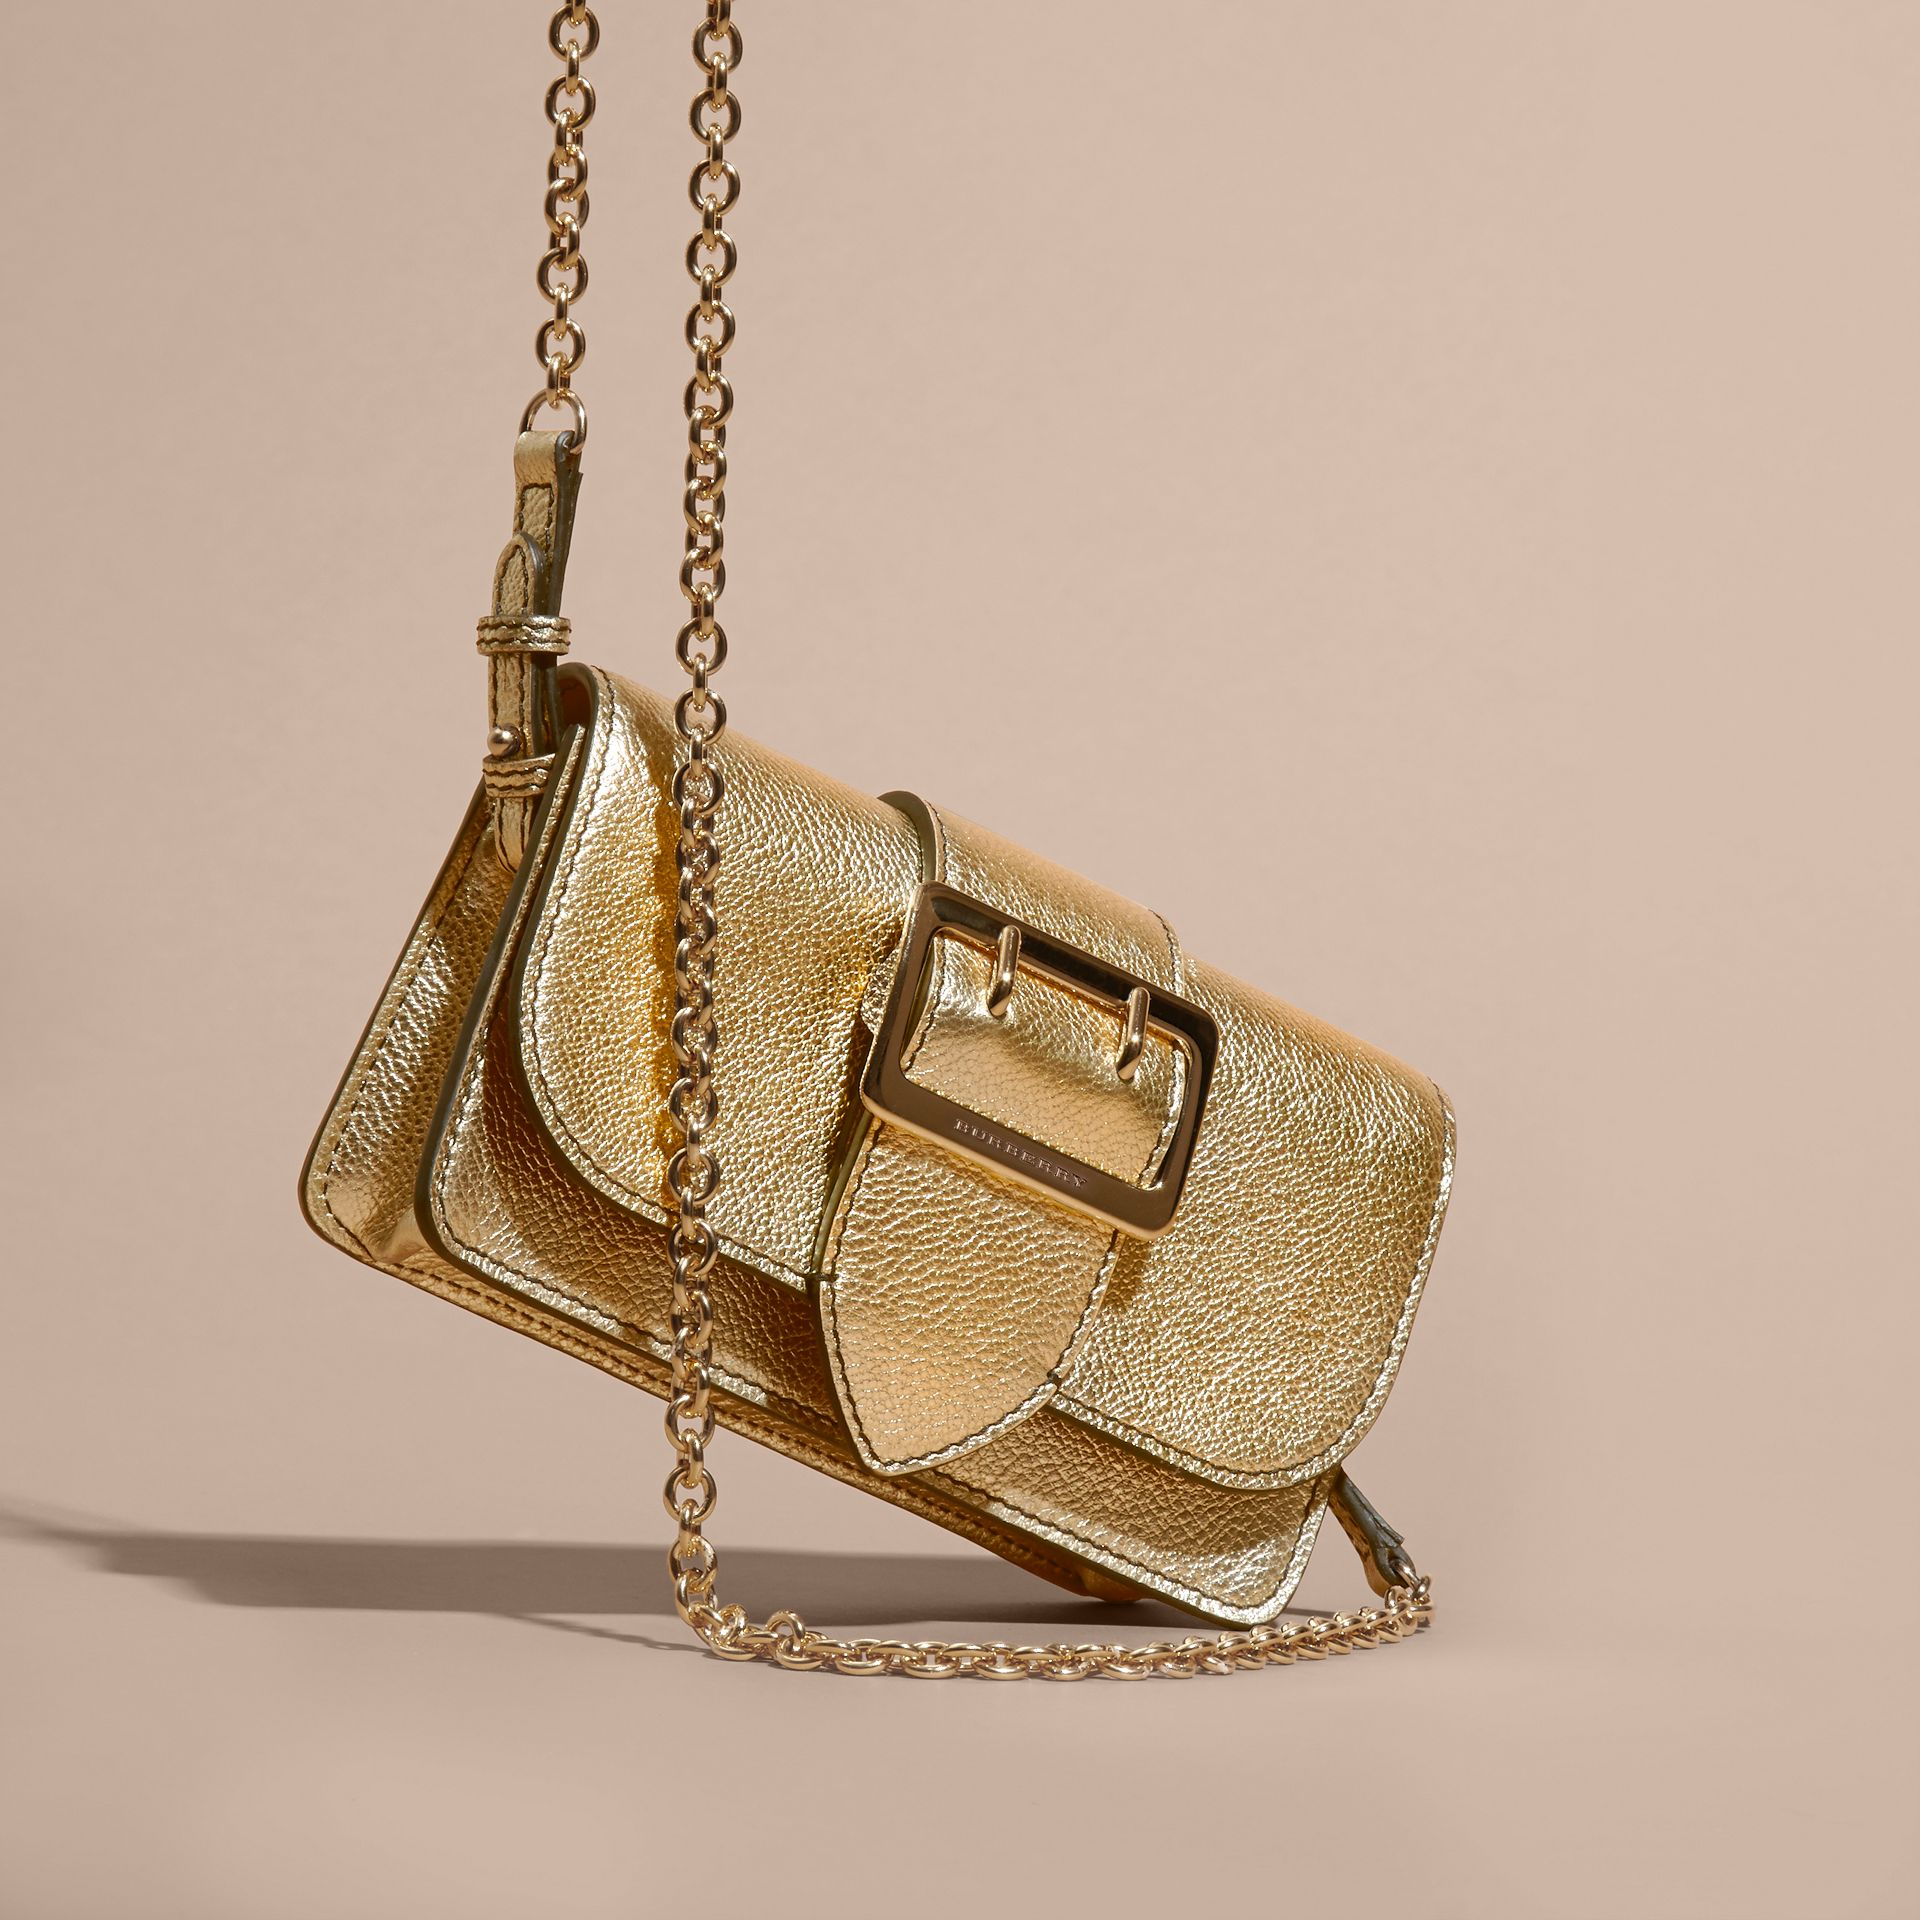 Gold The Mini Buckle Bag in Metallic Grainy Leather Gold - gallery image 8